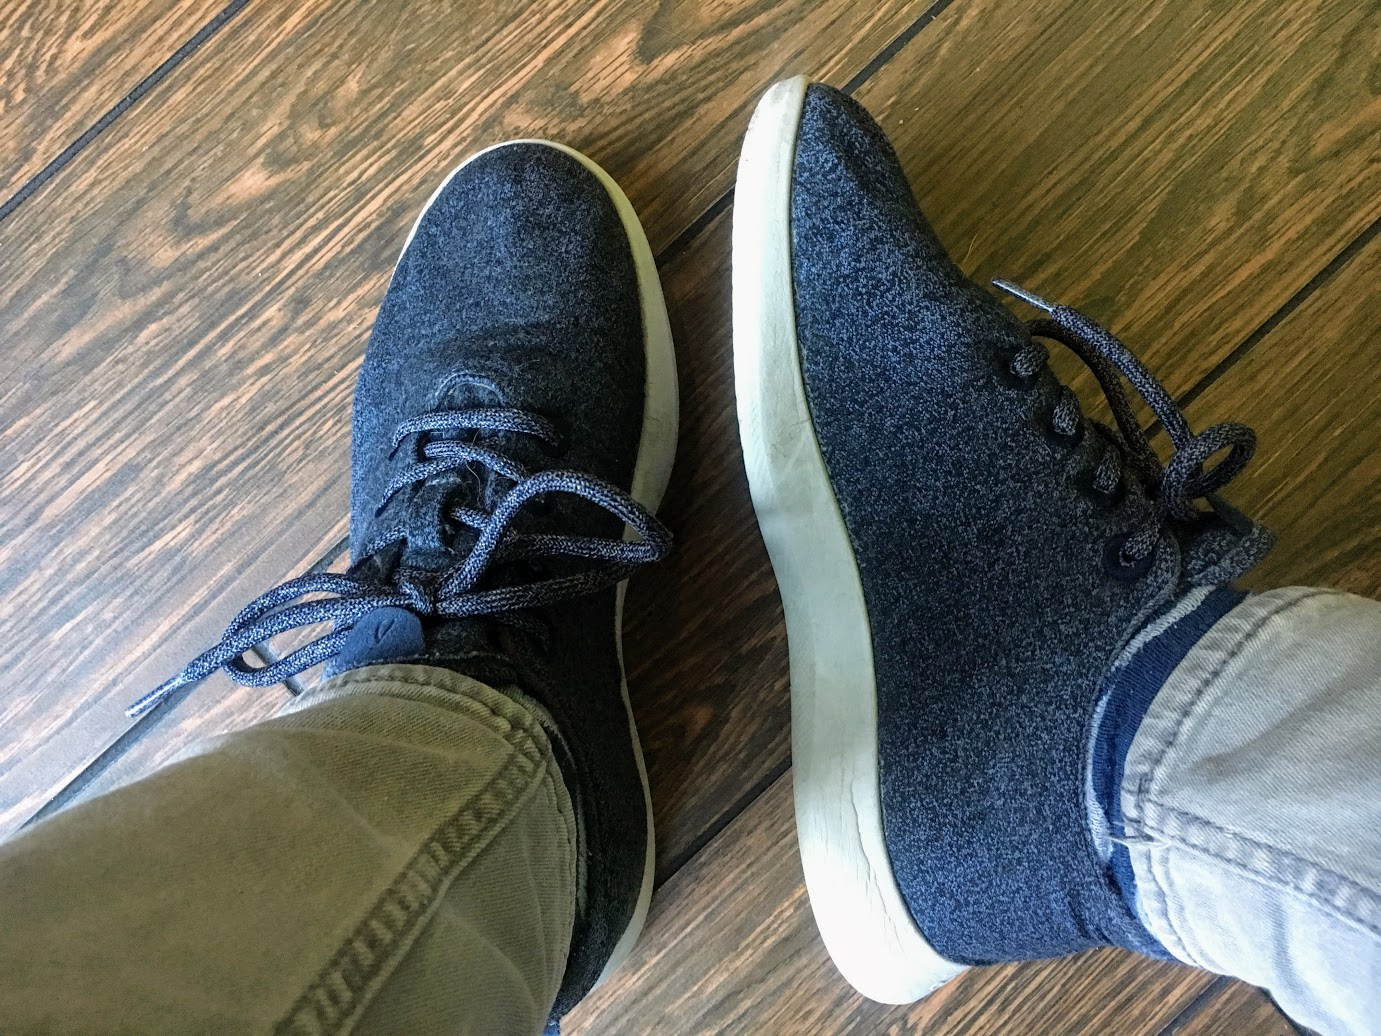 Allbirds 6-Month Review: How Are These